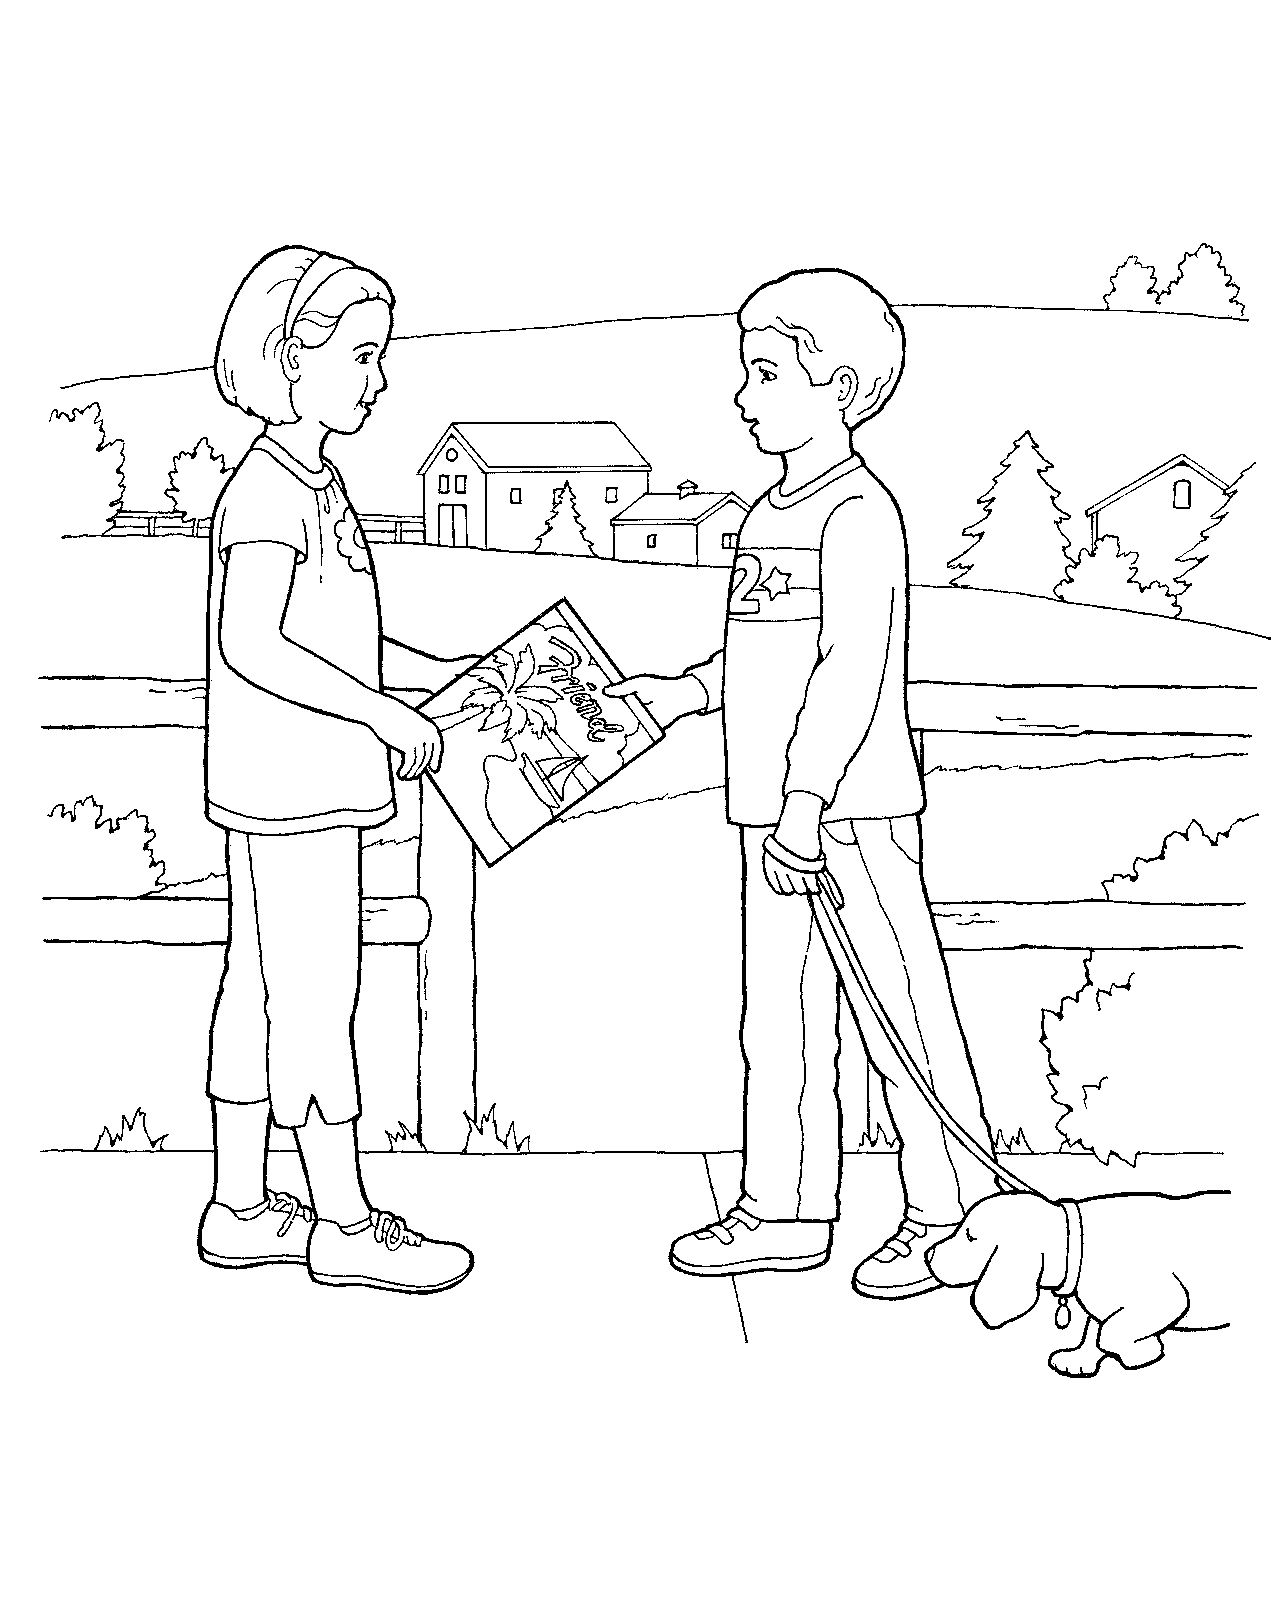 Primary coloring sheet from lds.org. For more LDS coloring